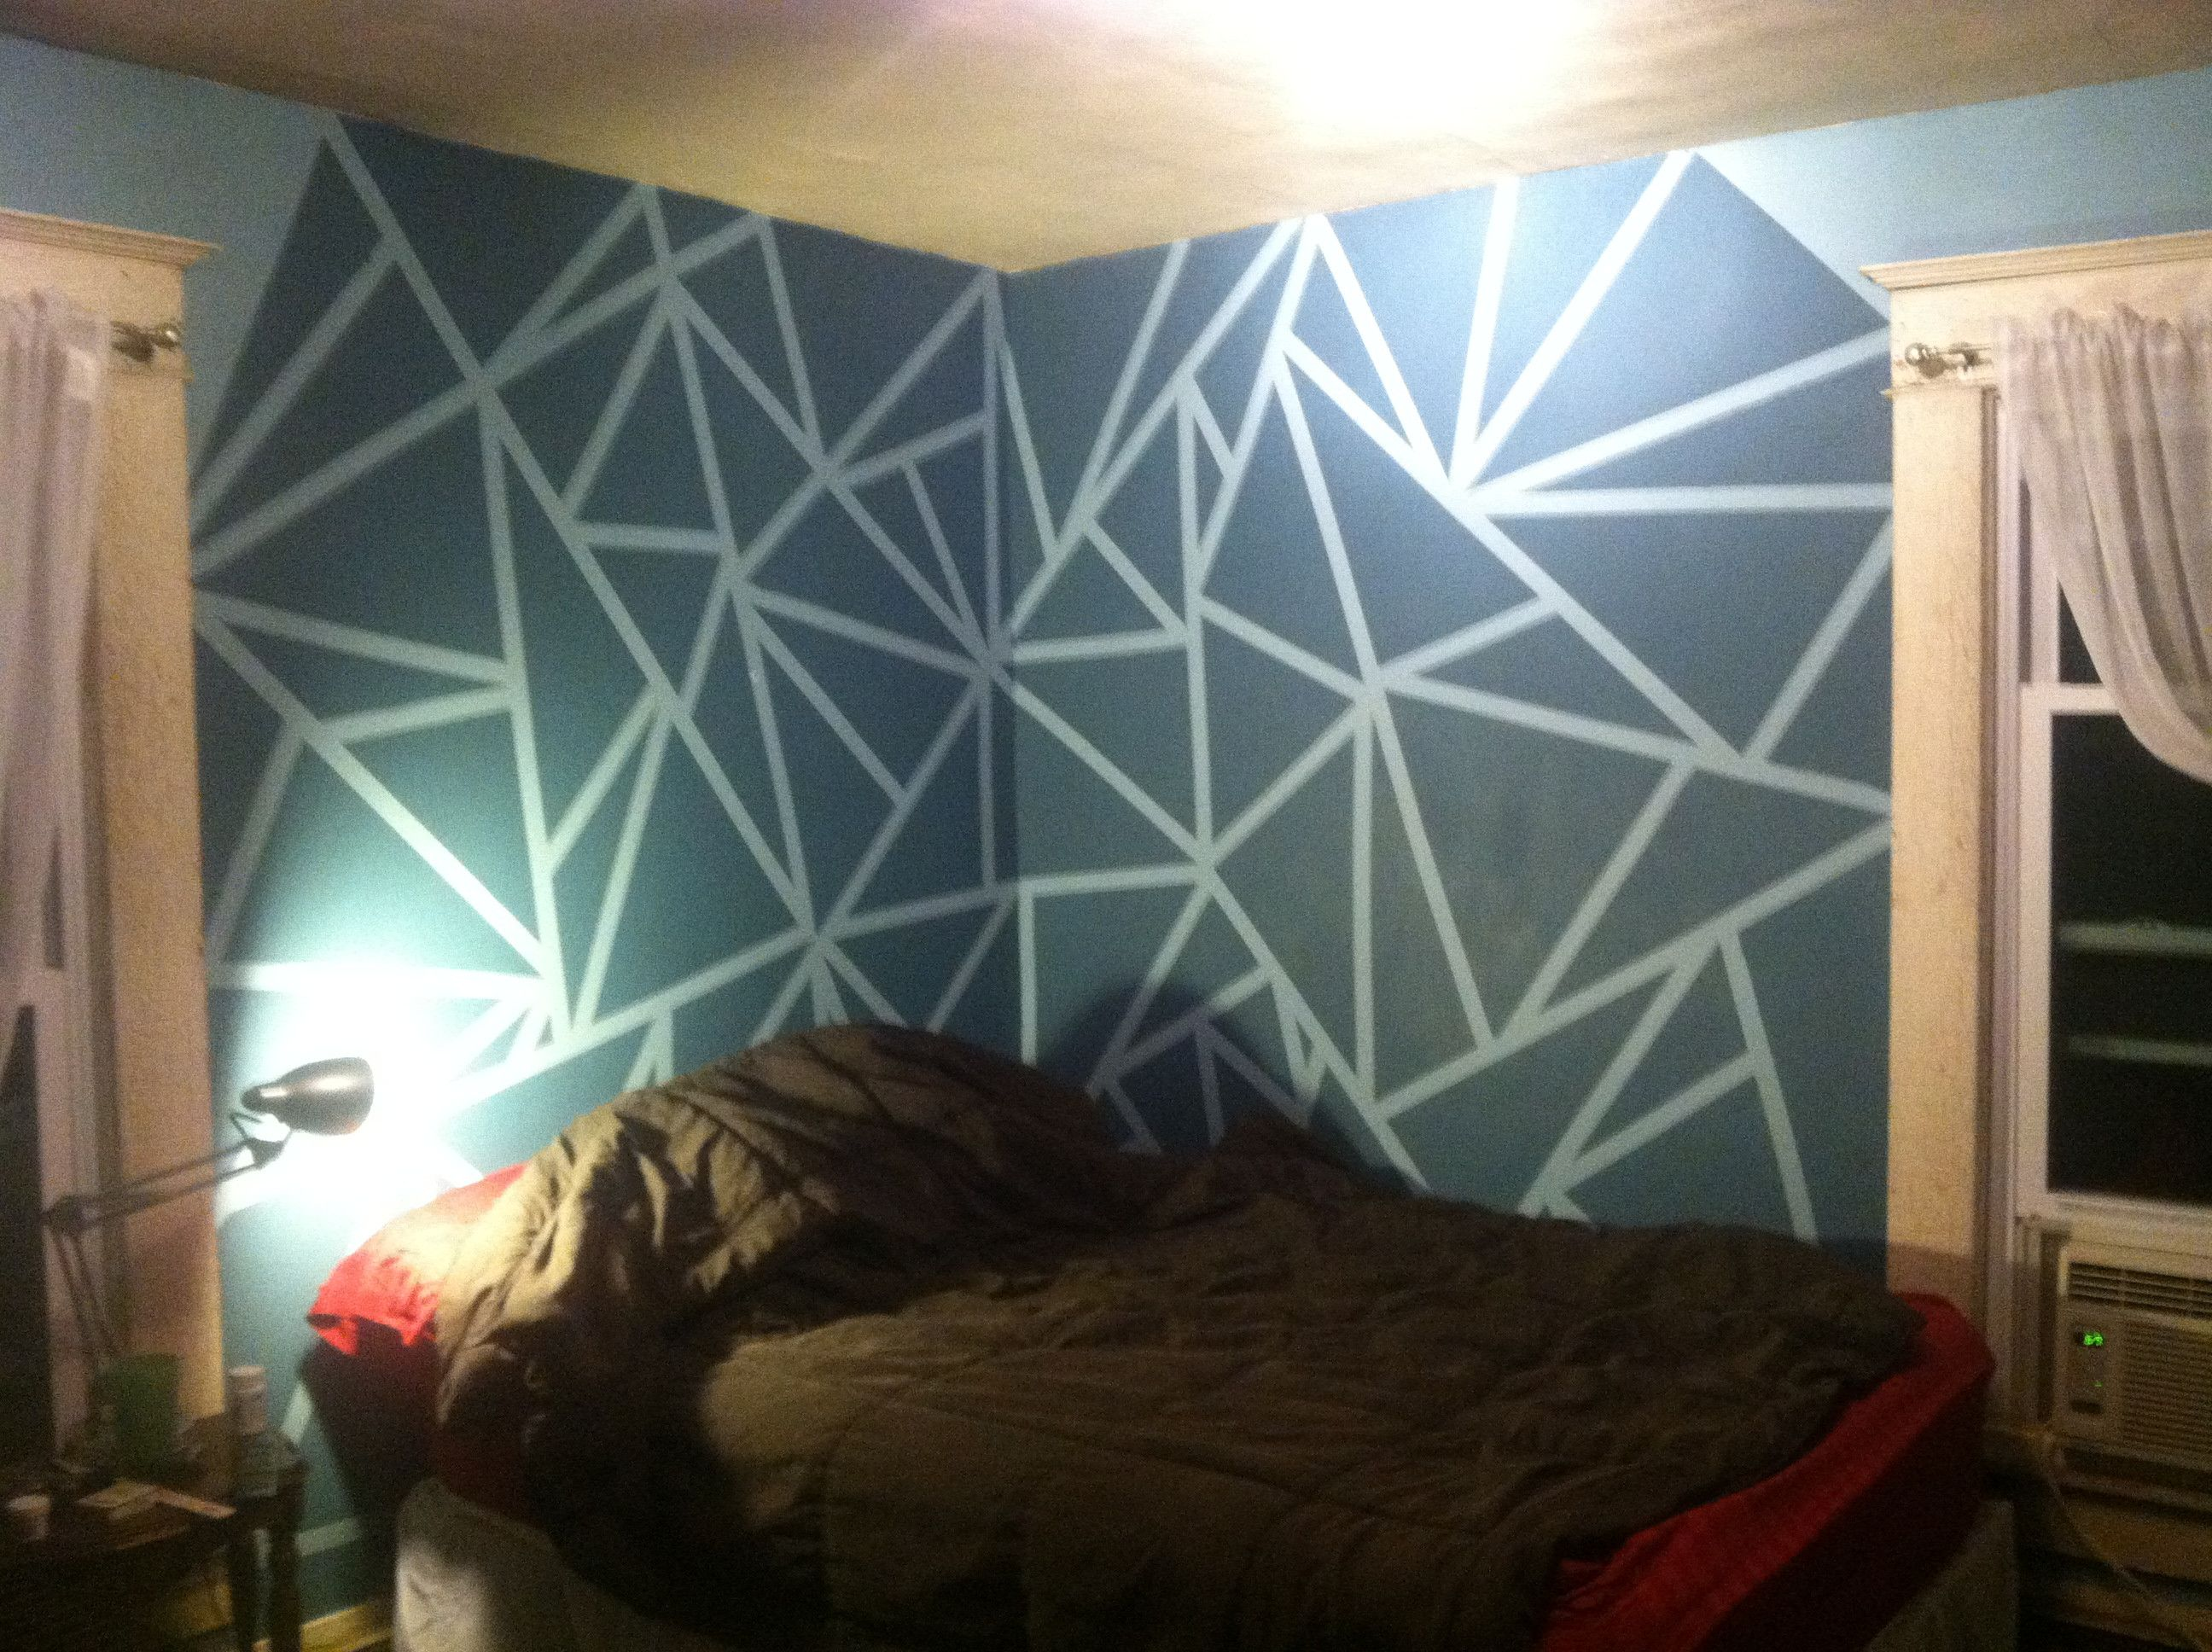 Day 4 Paint Dried And Tape Removed Dimensional Wall Decor Interior Design Living Room Wall Painting